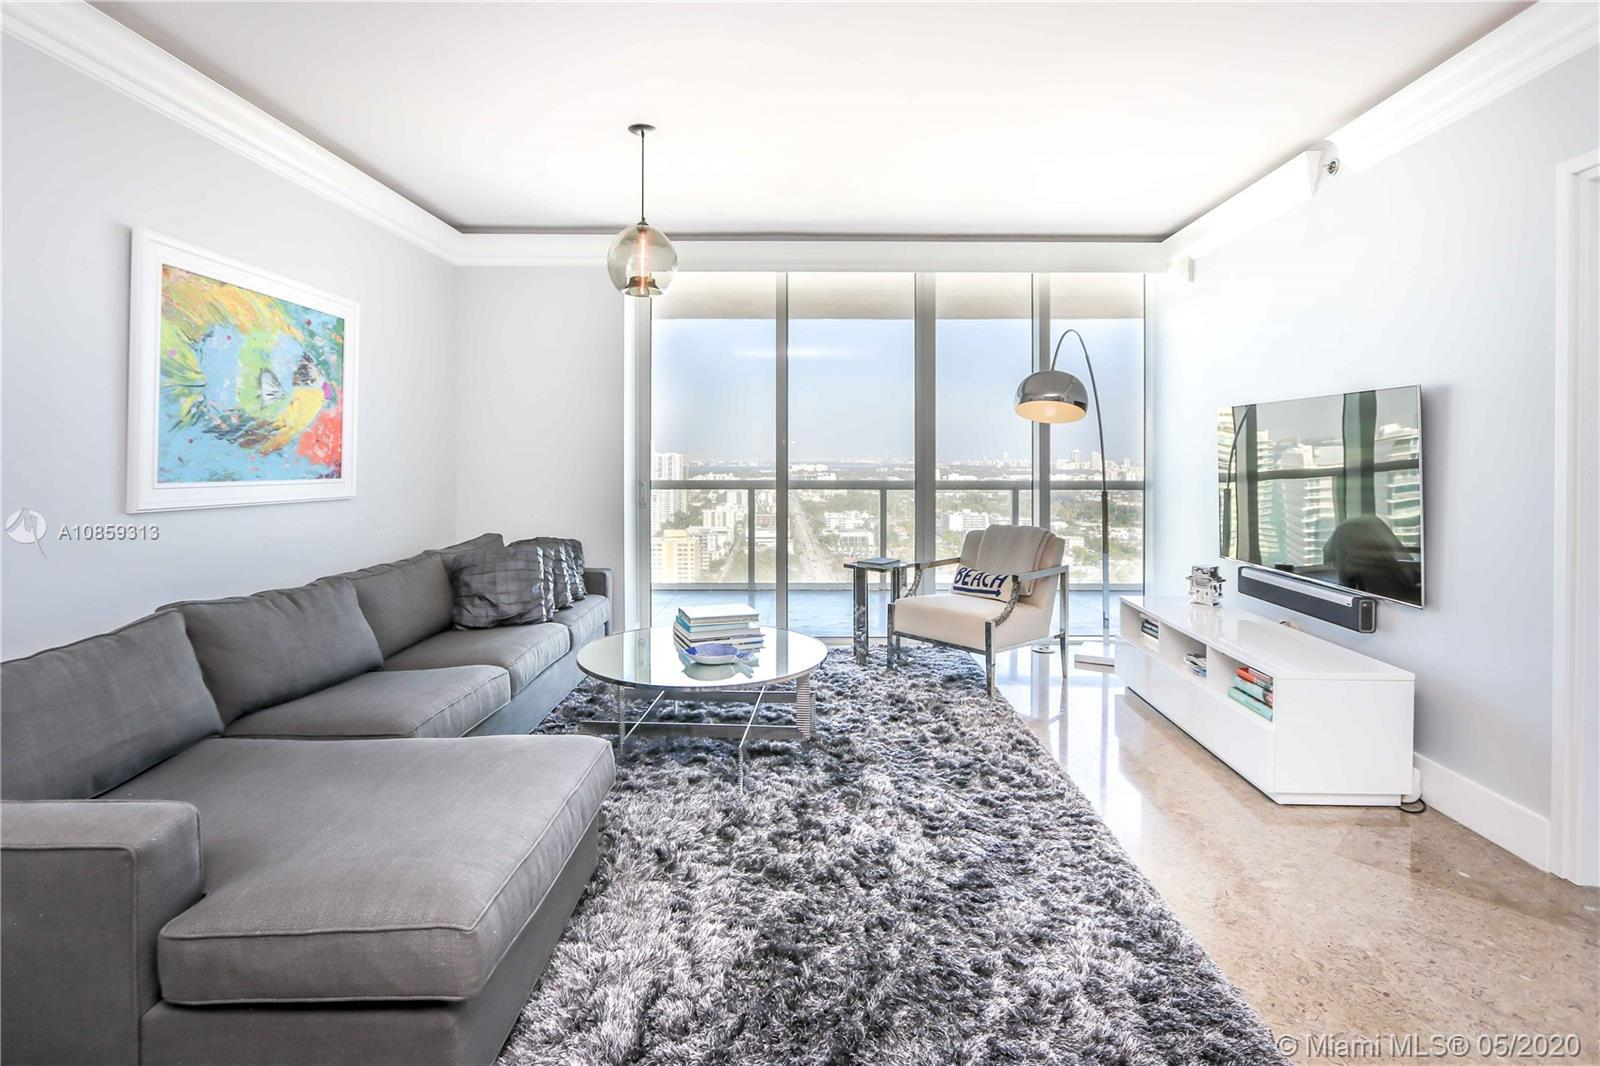 Spacious high floor 06 line 2 bedrooms / 2 bathrooms at Icon South Beach. Kitchen opened and great l